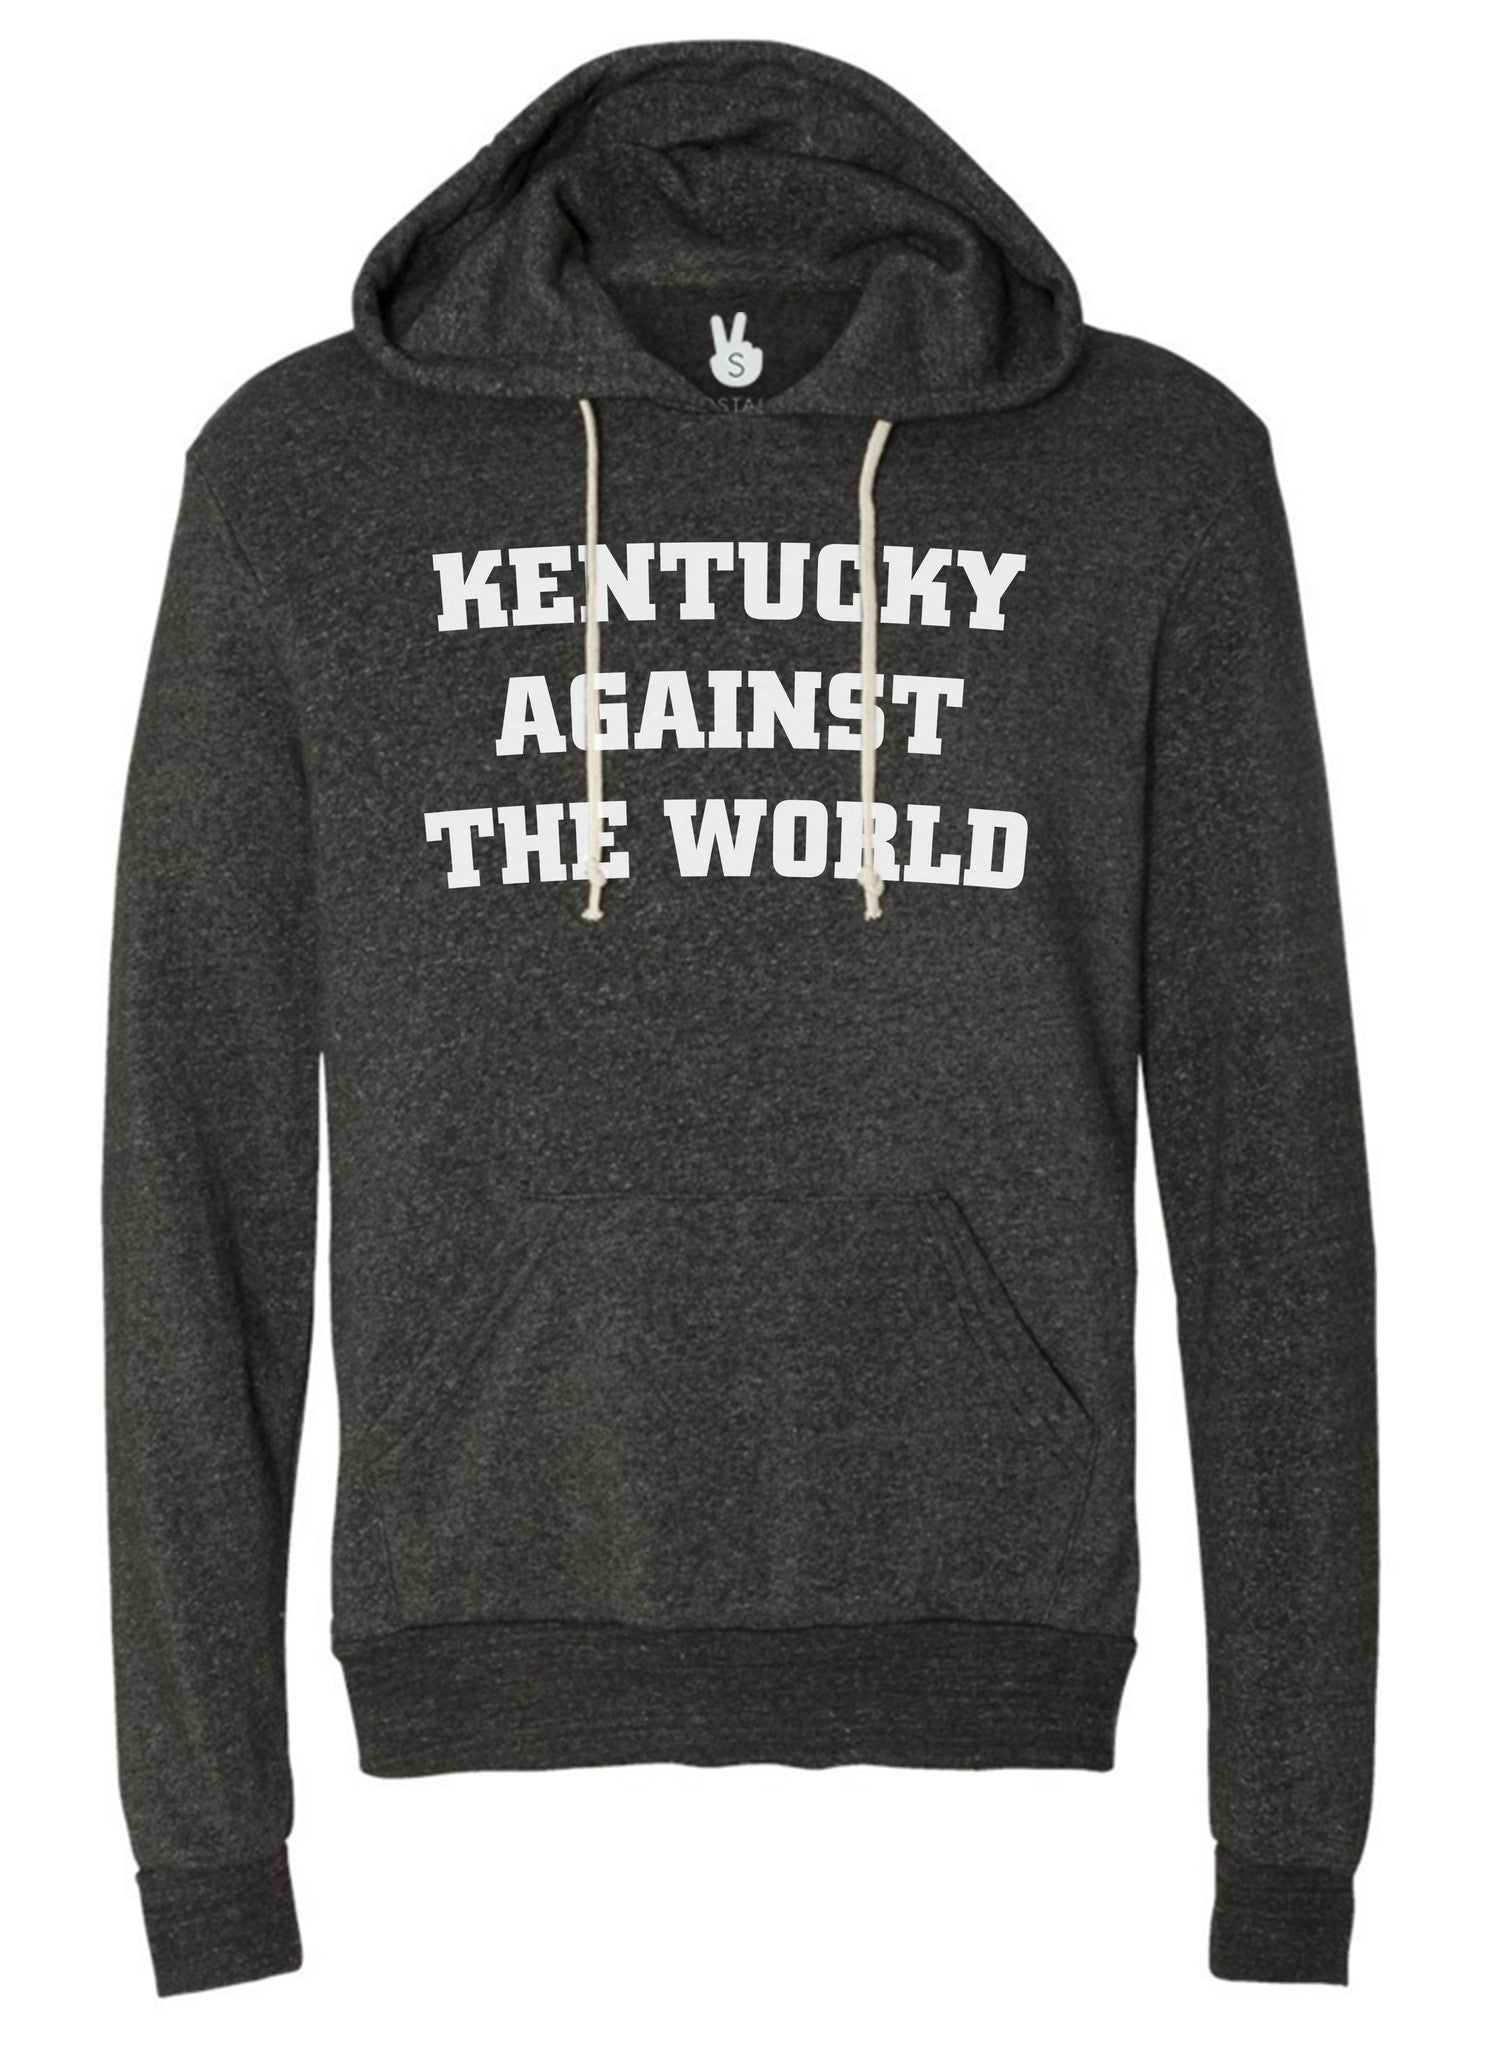 KENTUCKY AGAINST THE WORLD Briar Sweatshirt